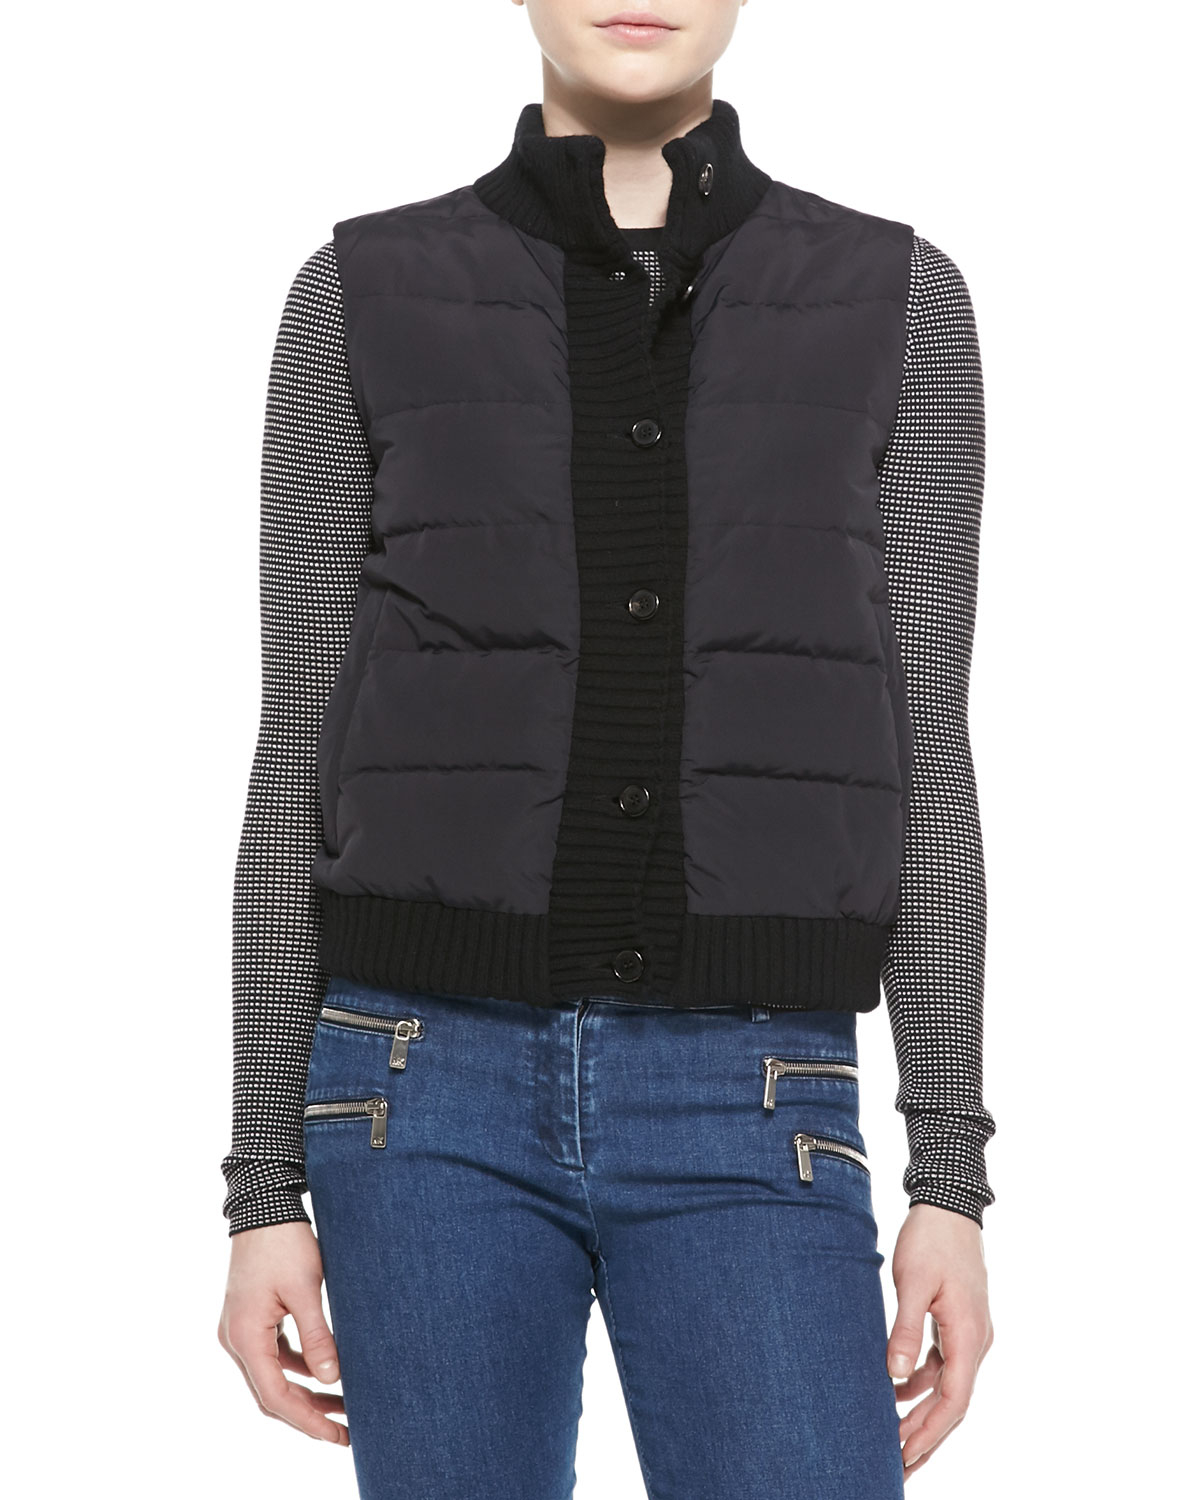 how to make a puffer vest